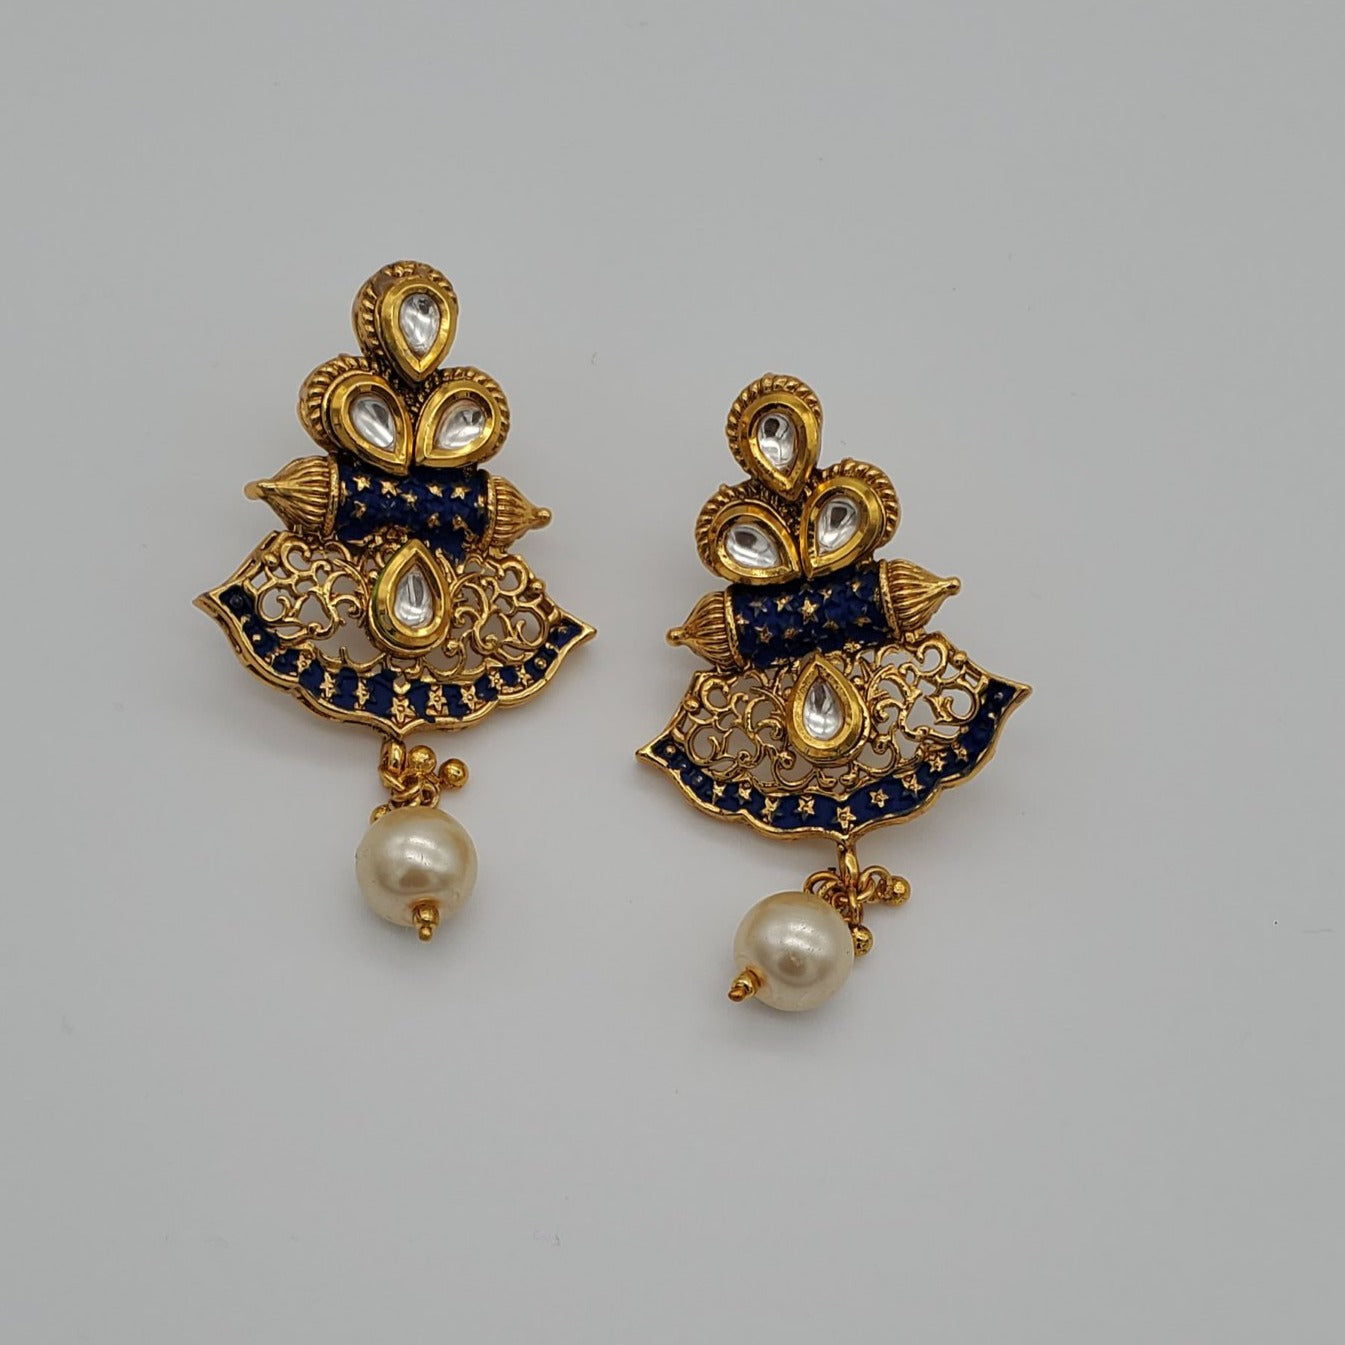 Indian earrings/gold plated earring/artificial earrings/ pearl drop earring/Bollywood style fashion jewelry/meenakari earring/kundan earring